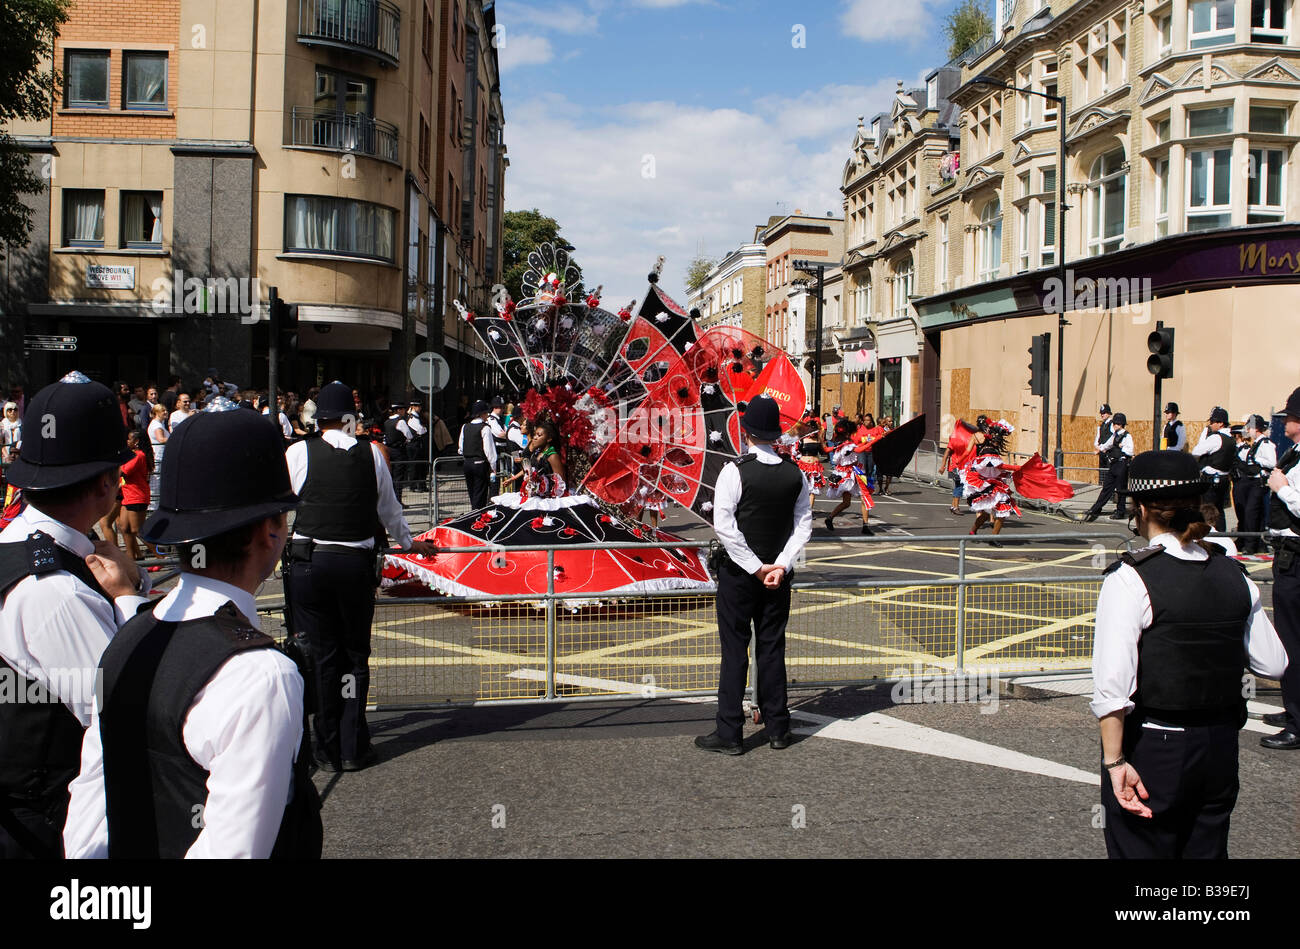 Officers of the London Metropolitain Police Force maintain a watch on the festivities during the Notting Hill Carnival - Stock Image